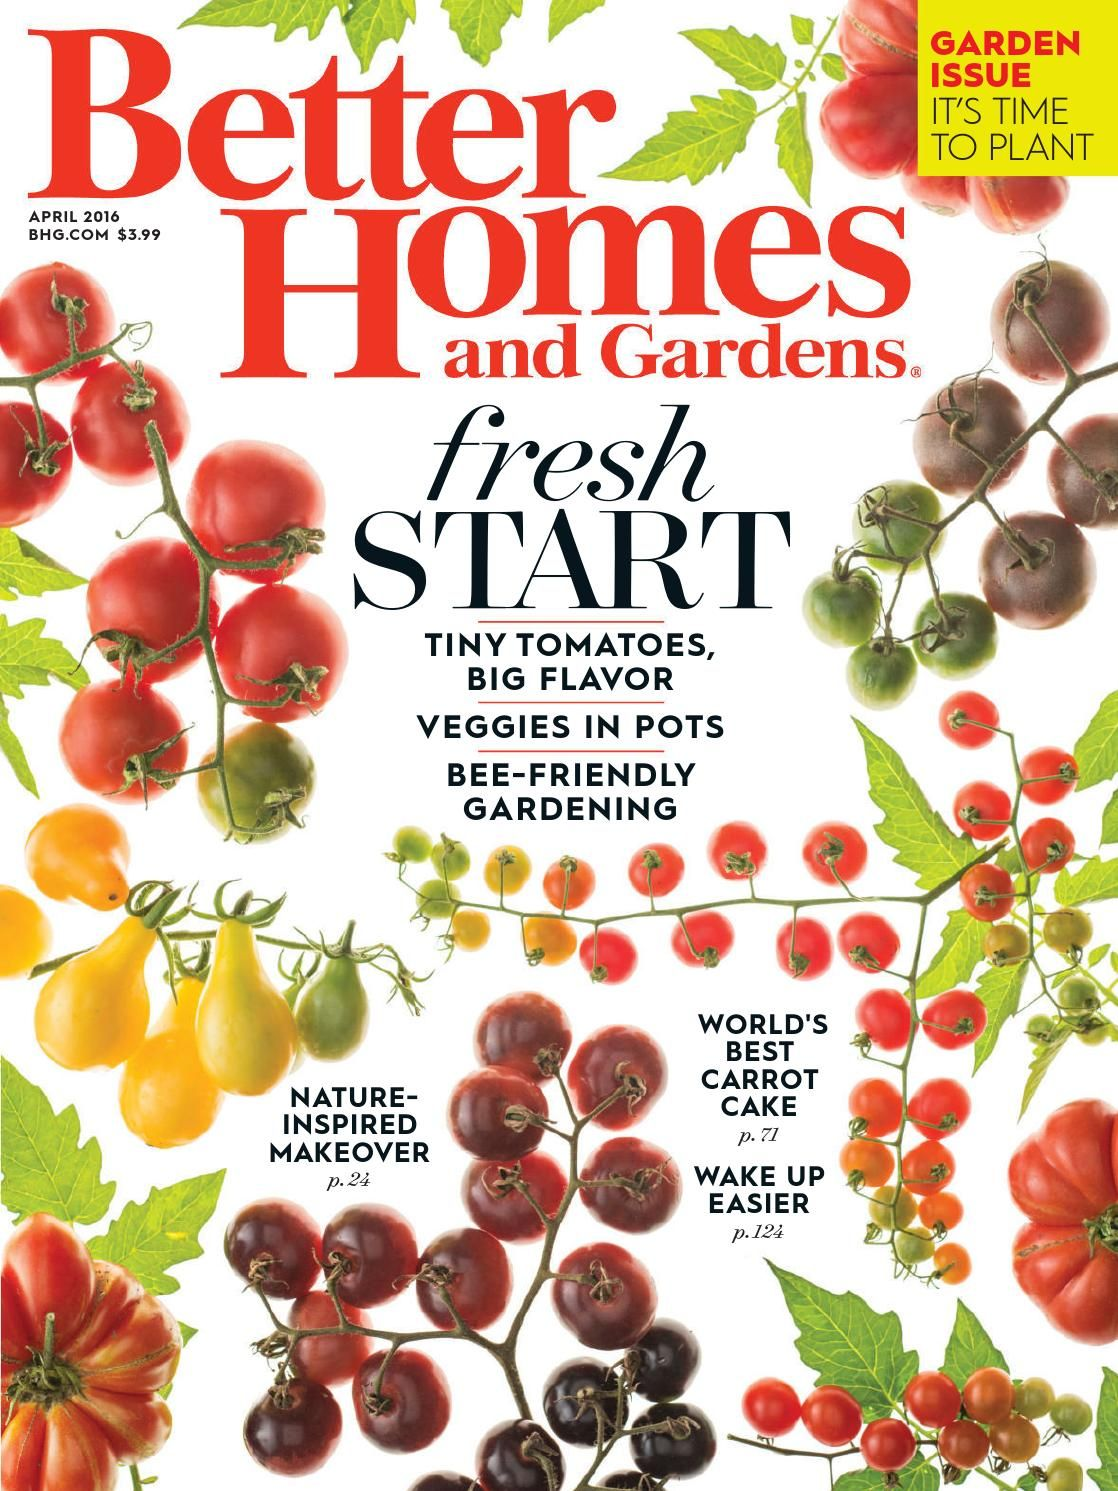 7ab684b3fc096c032c32aac5f6607840 - Better Homes And Gardens April 2016